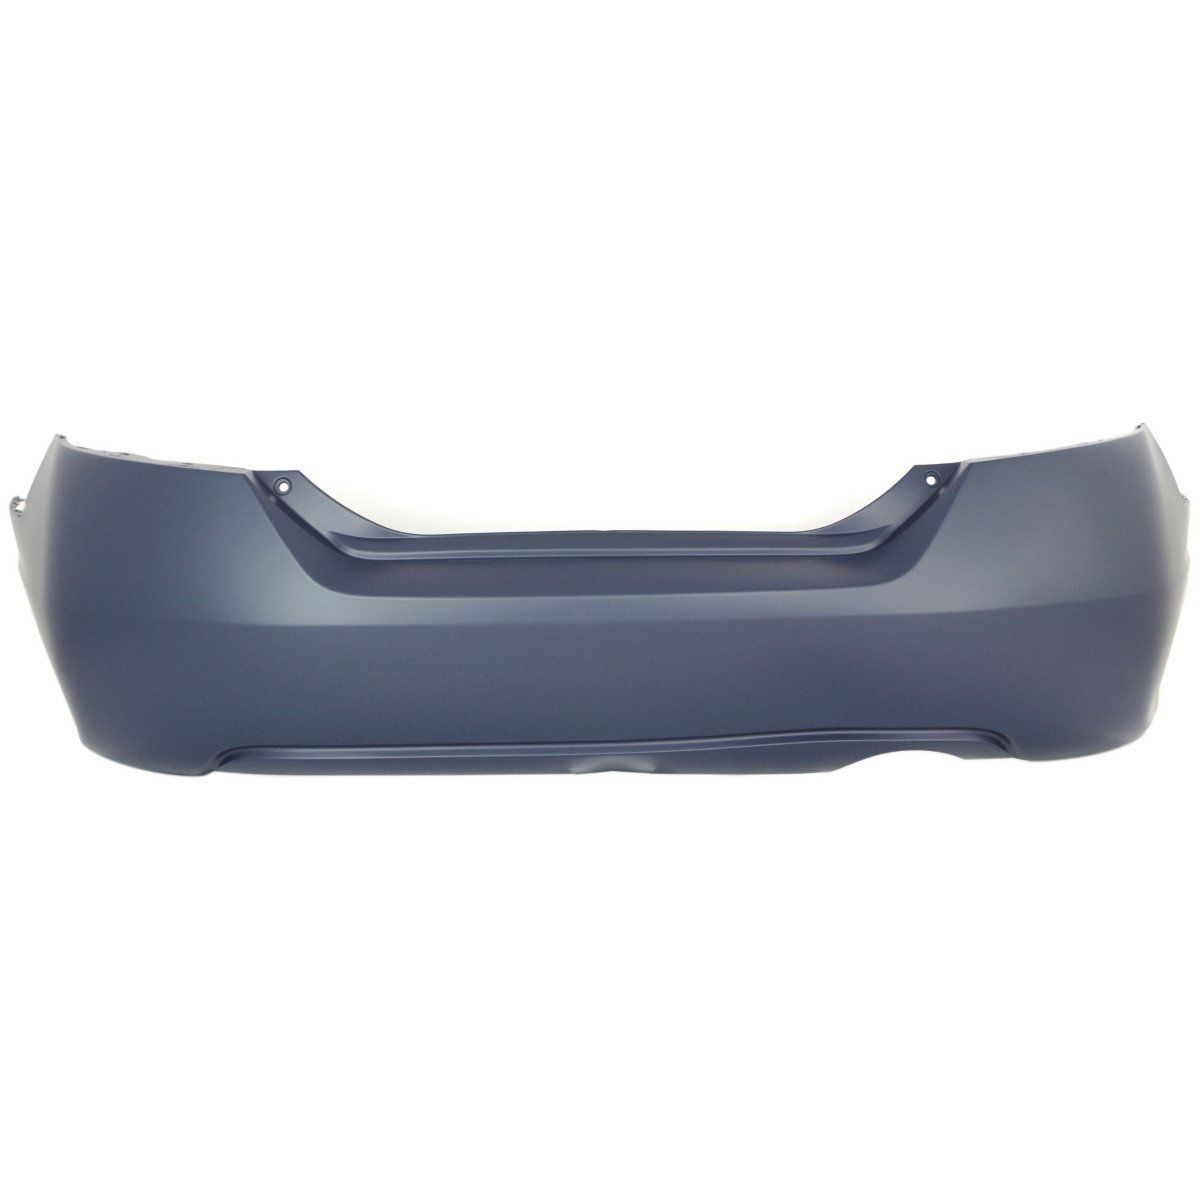 2006-2011 HONDA CIVIC Rear Bumper Cover 2dr coupe Painted to Match